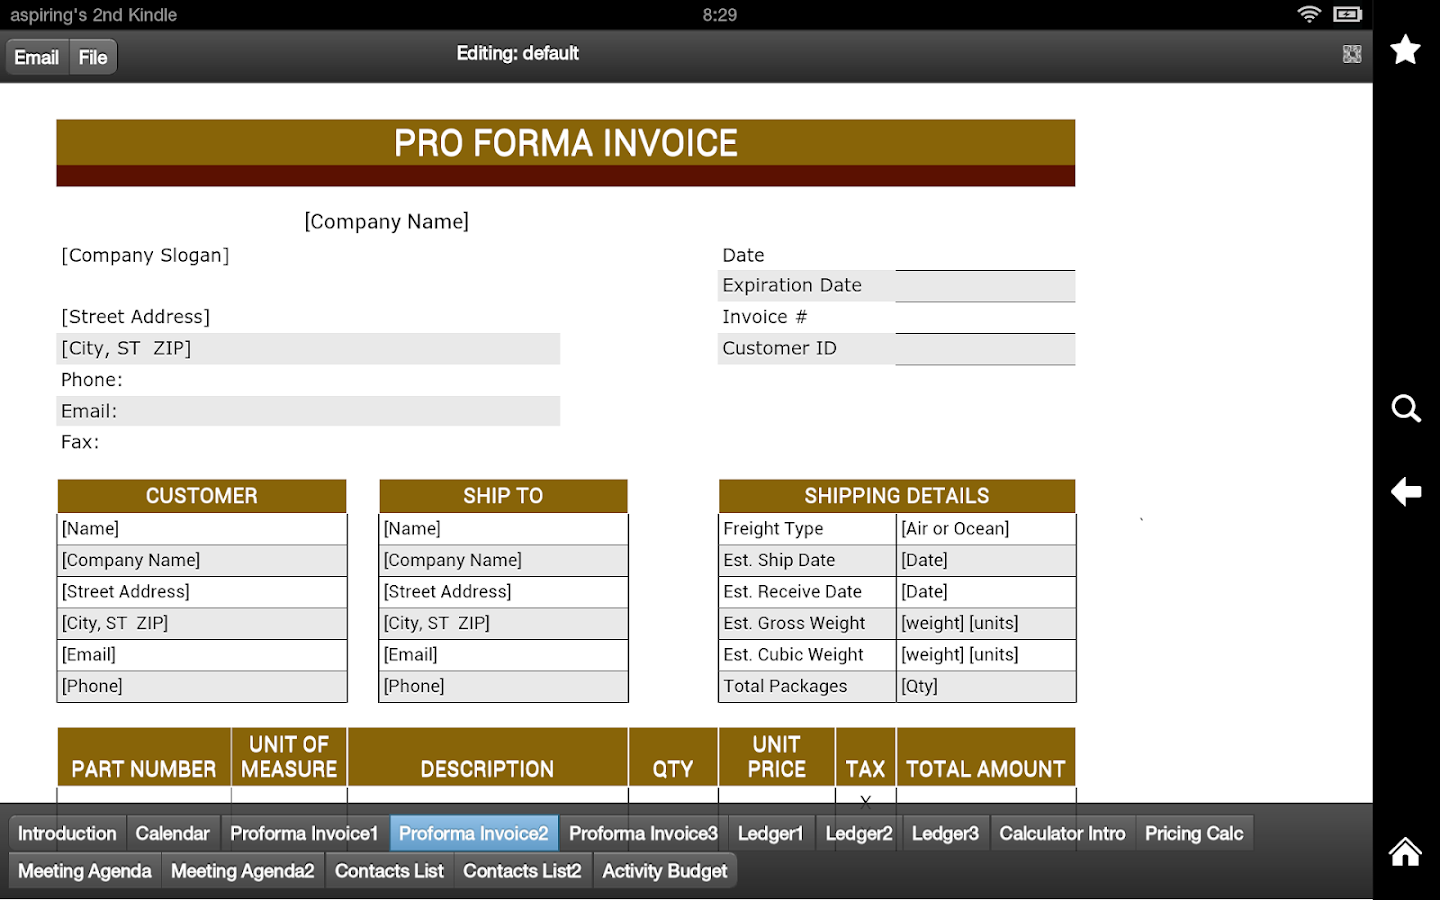 proforma invoice android apps on google play proforma invoice screenshot